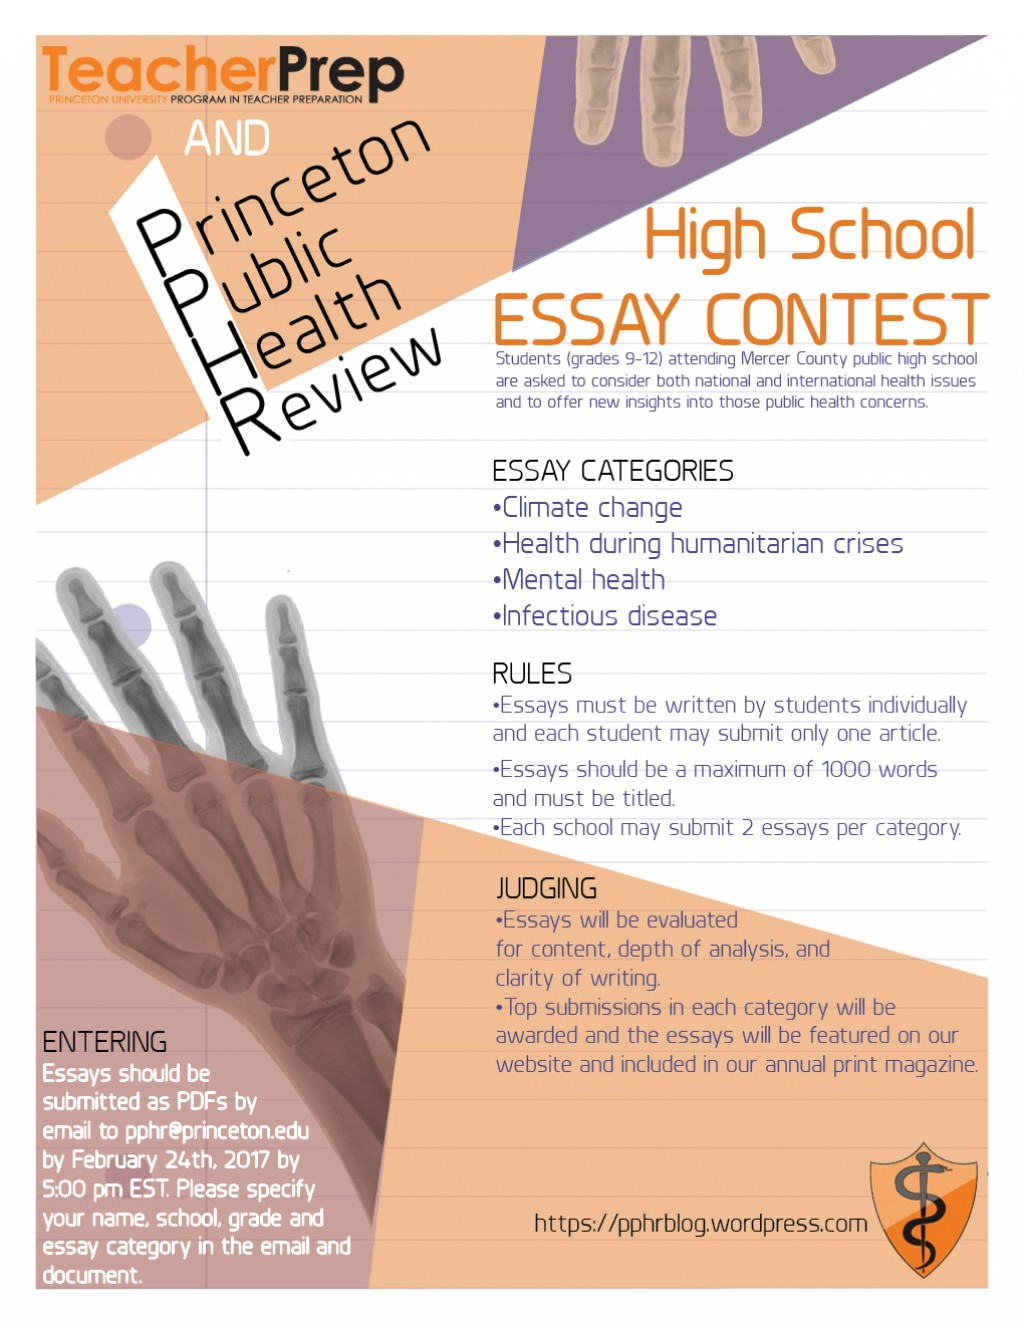 015 Princeton Essay Pphressaycontestfeb24 Astounding Review College Guide Graded Confidential Large